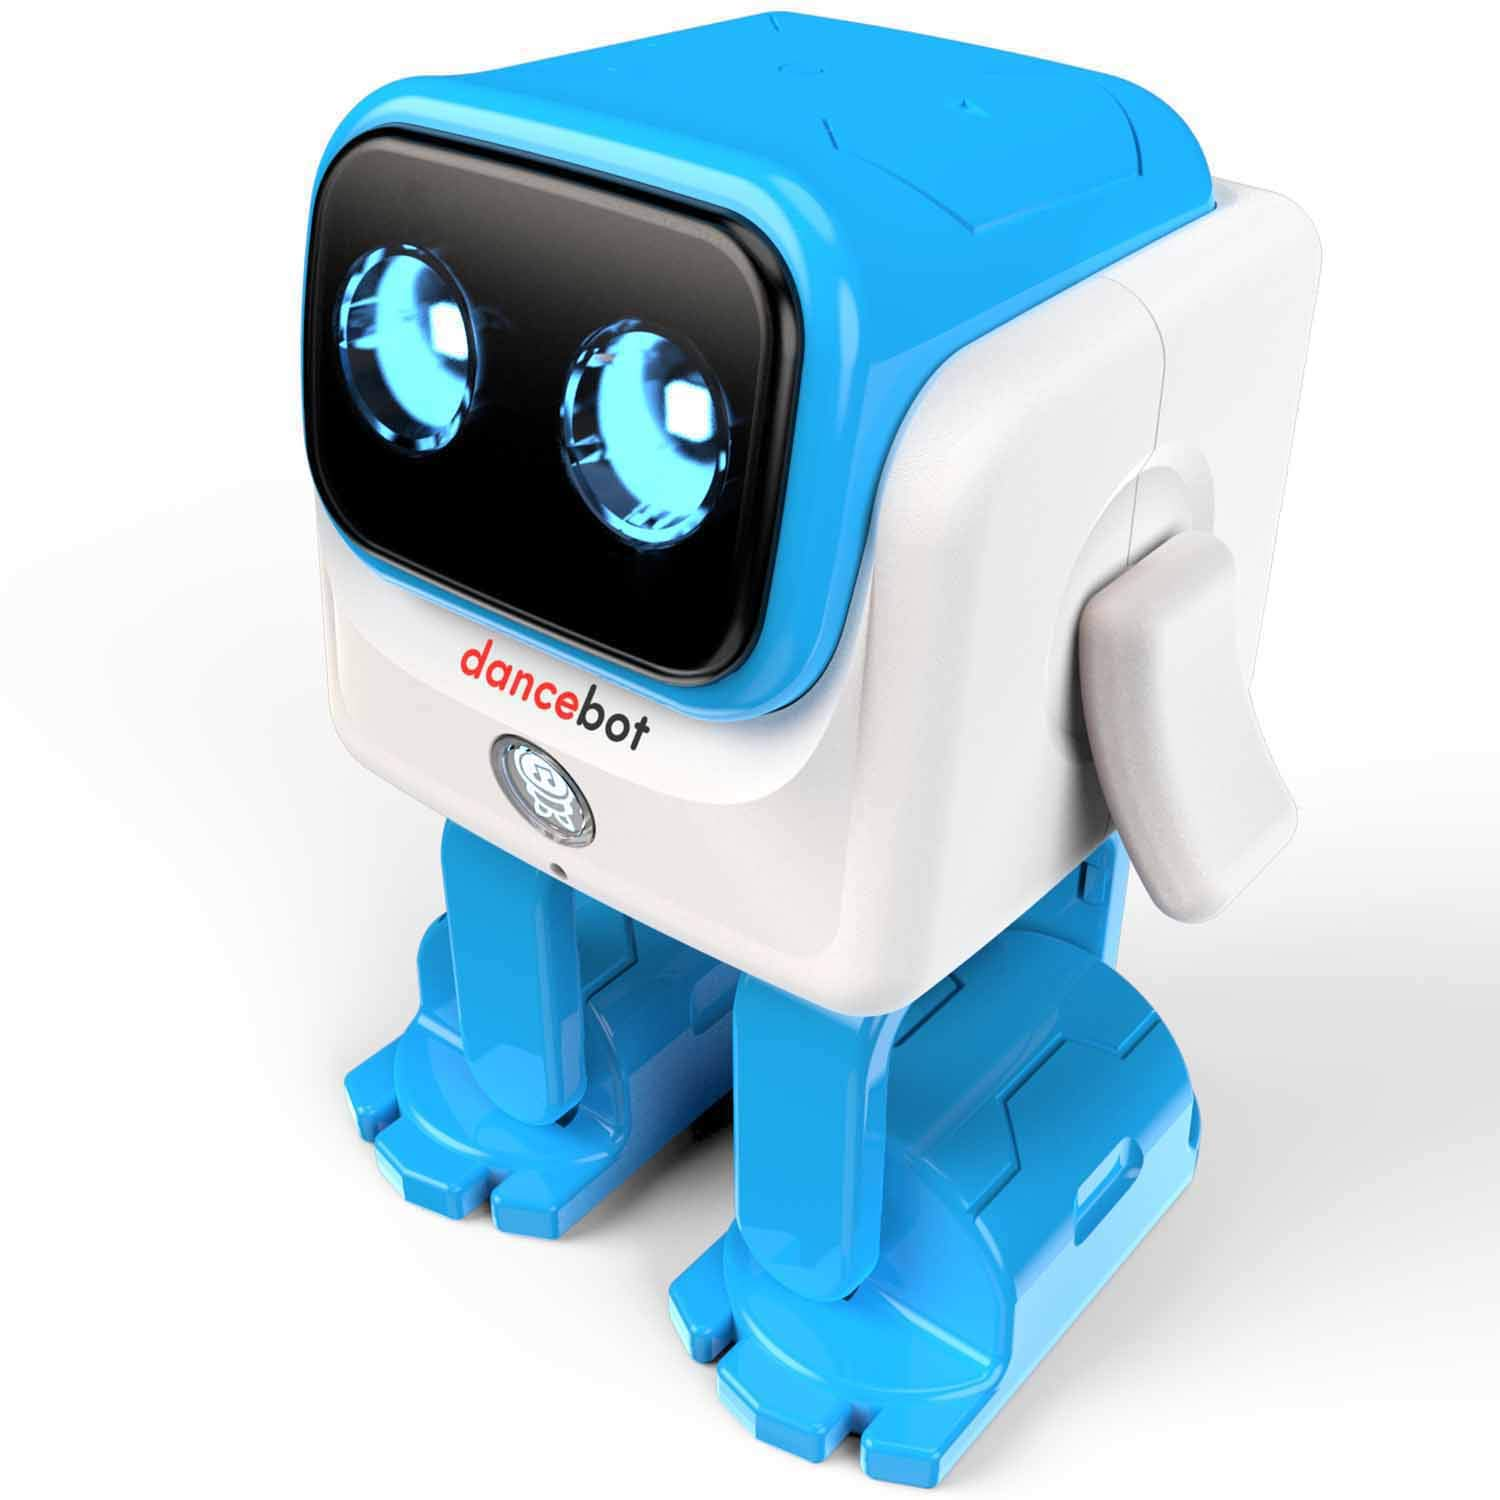 Echeers Kids Toys Dancing Robot for Boys and Girls, Educational Dancing Robot Toys for Kids with Stereo Bluetooth Speakers, Rechargeable Dance Robot Follow Music Beats Rhythm, All Age Children - Blue